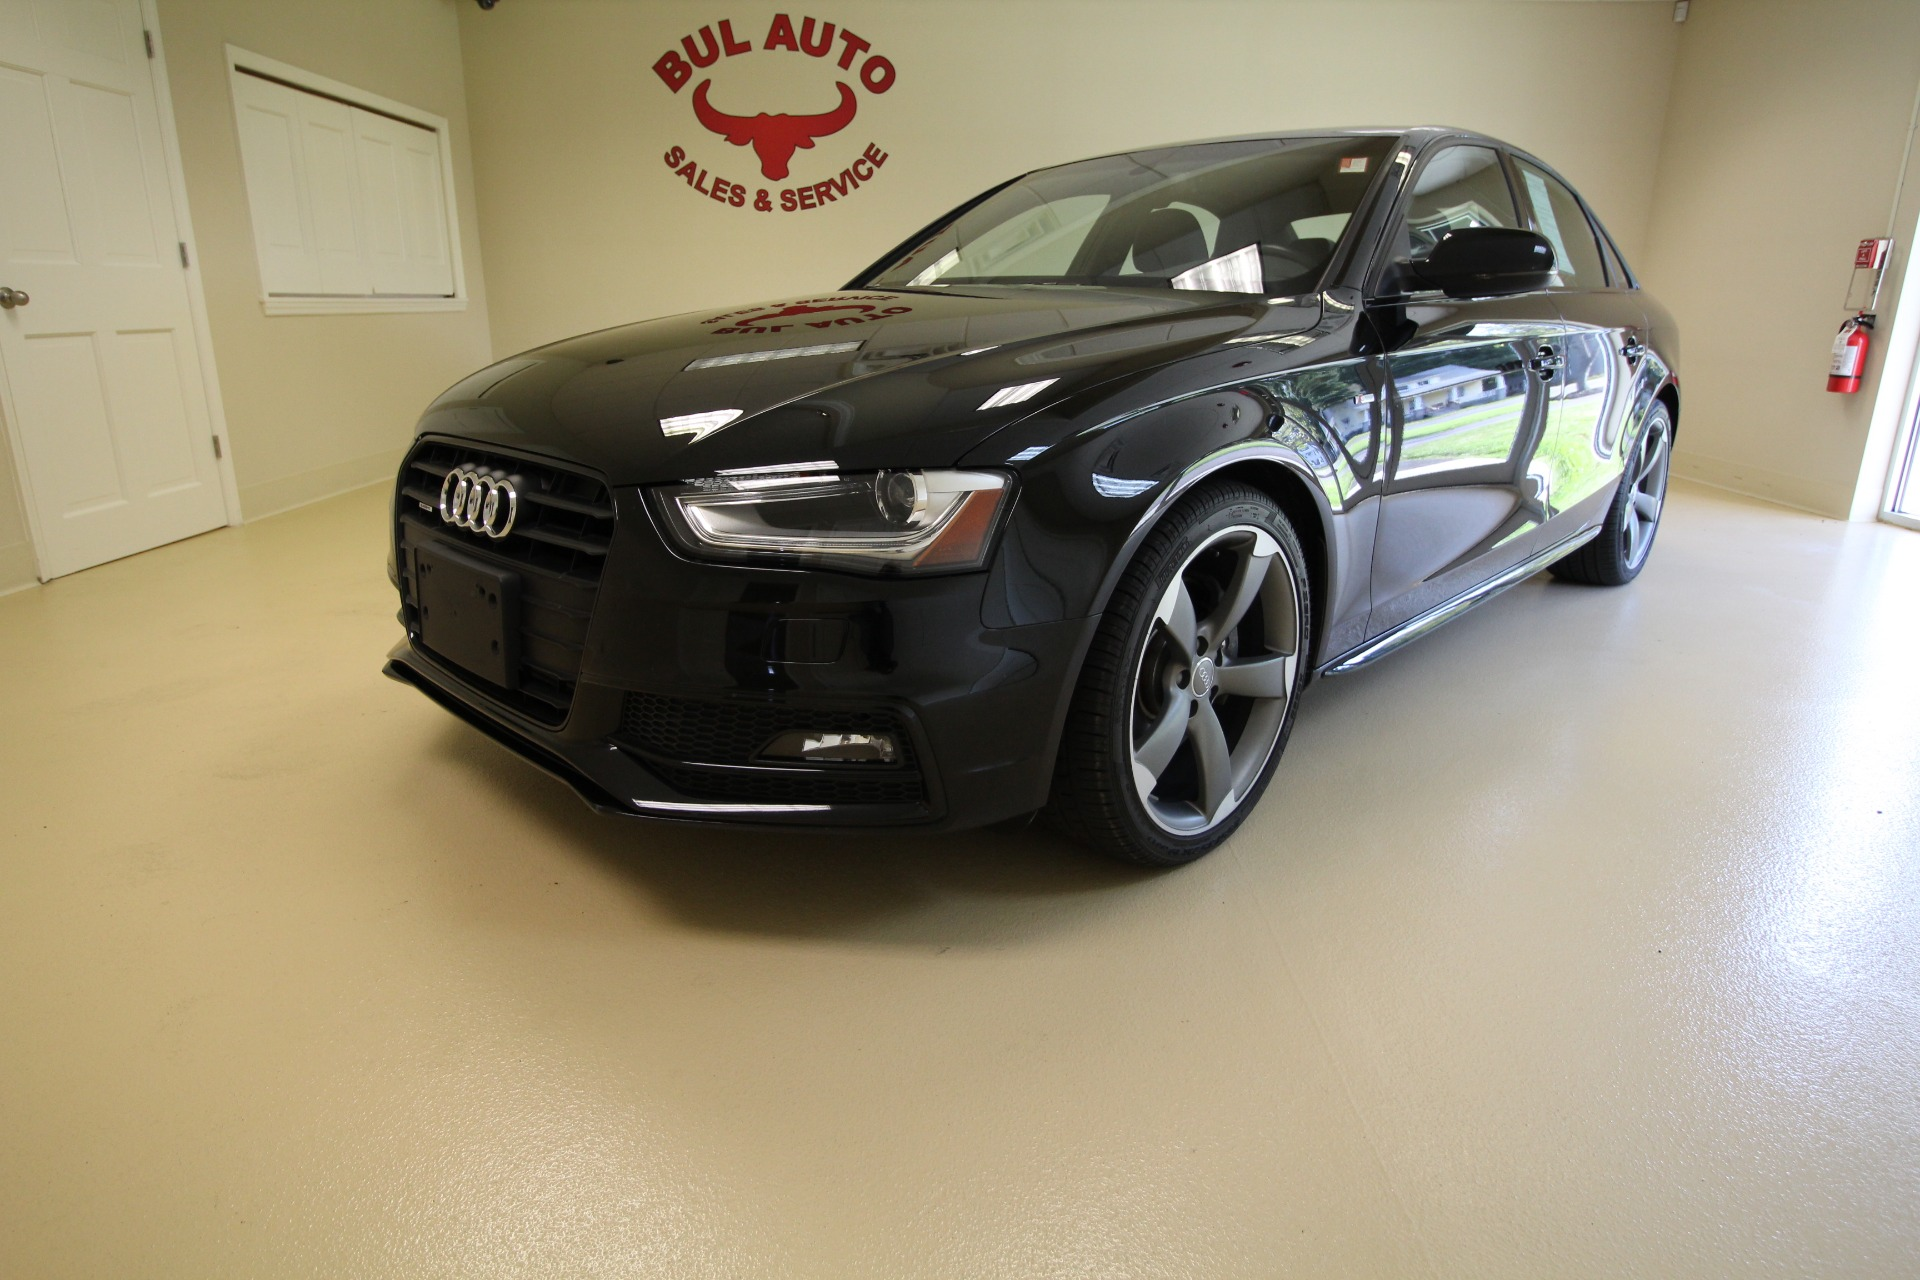 Audi A T Quattro Premium Plus Manual Stock For - Ny audi dealers